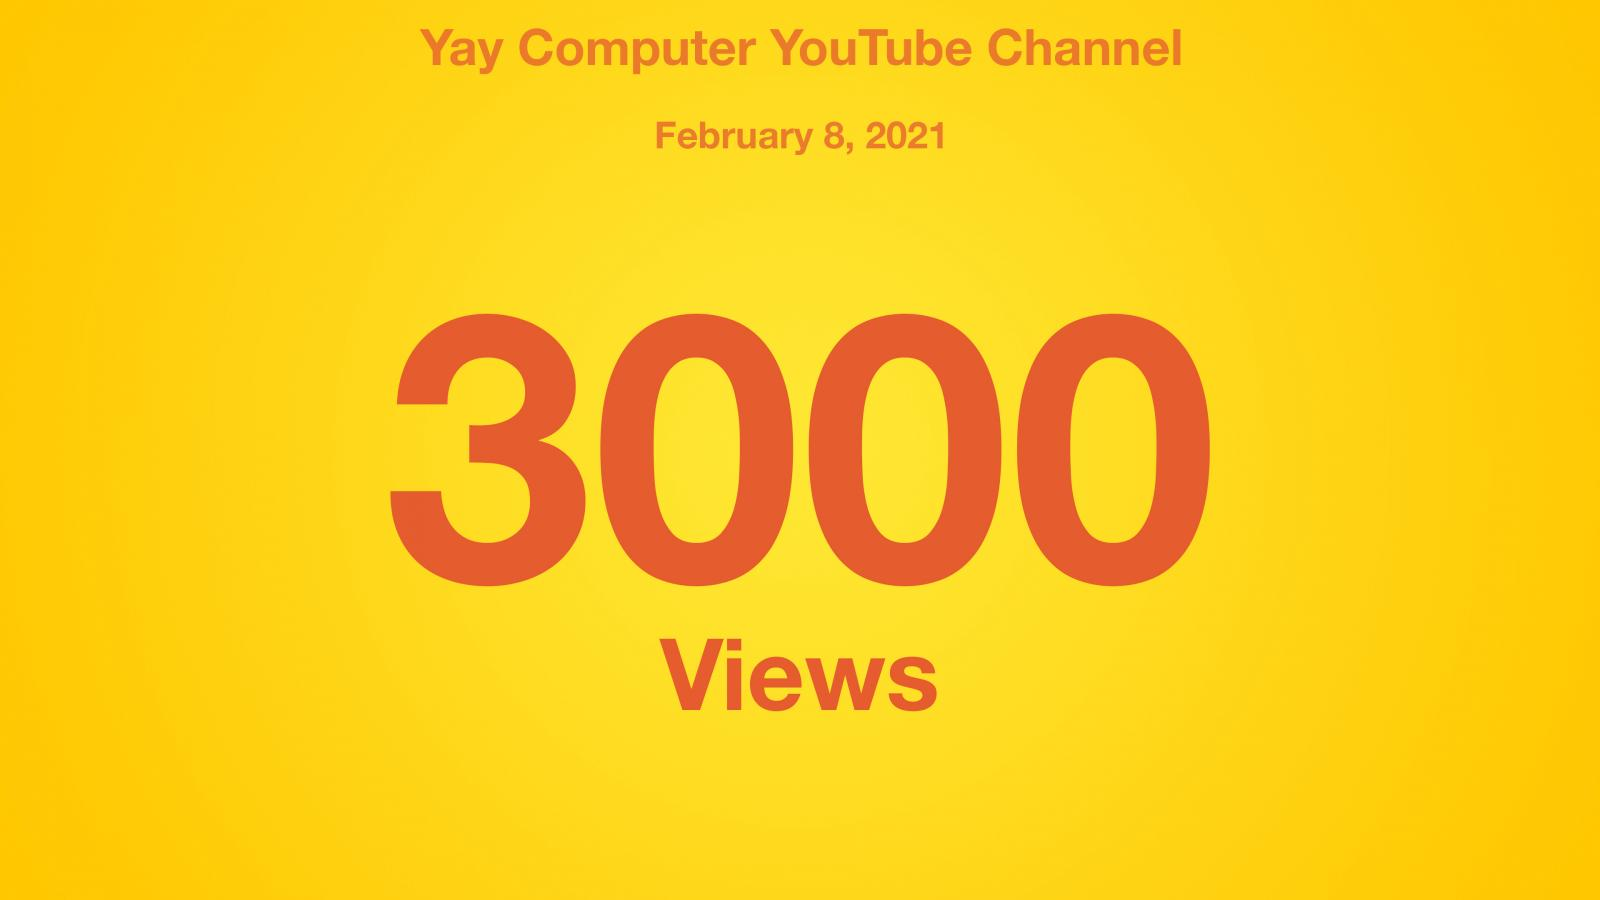 Yay Computer youTube Channel, February 8, 2021, 3000 Views